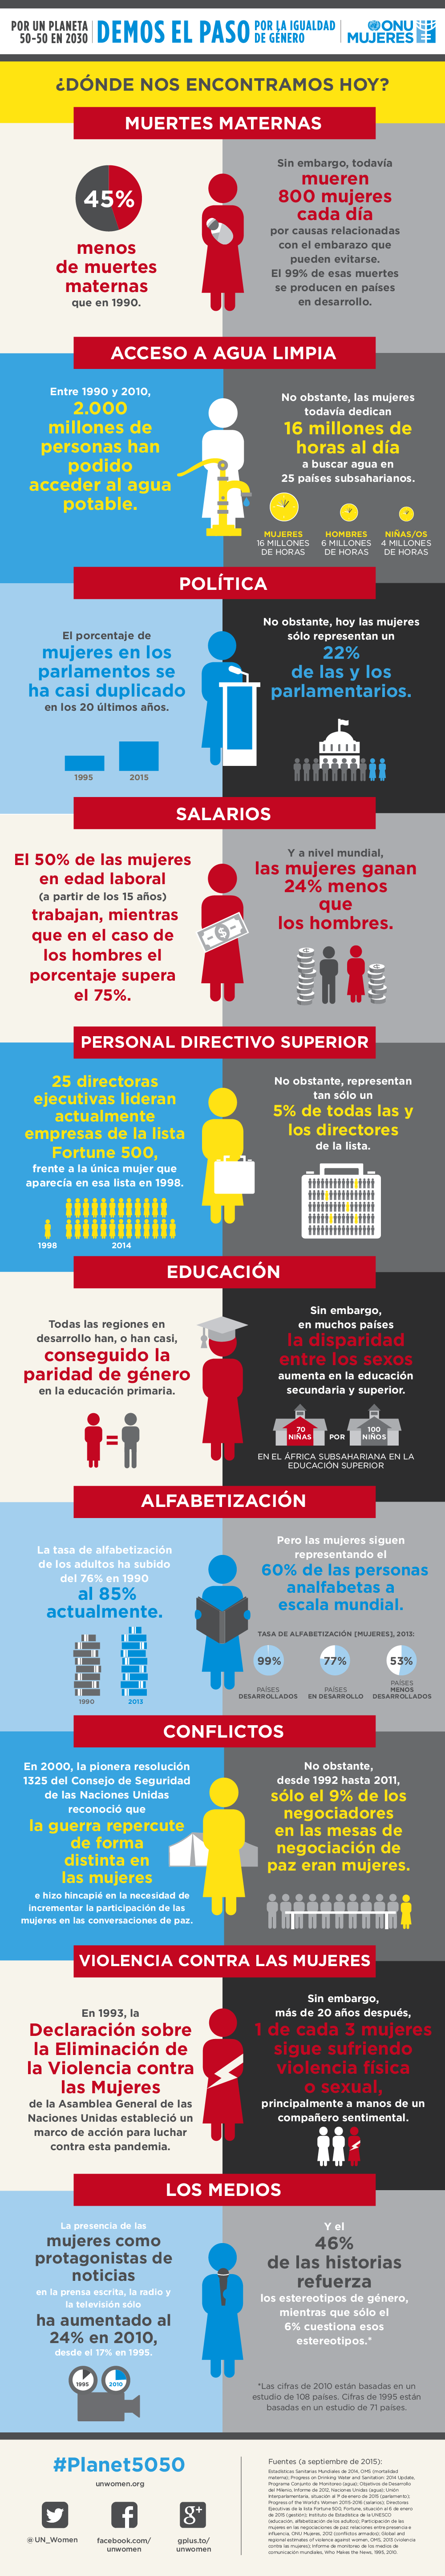 infographic-gender-equality-where-are-we-today-es